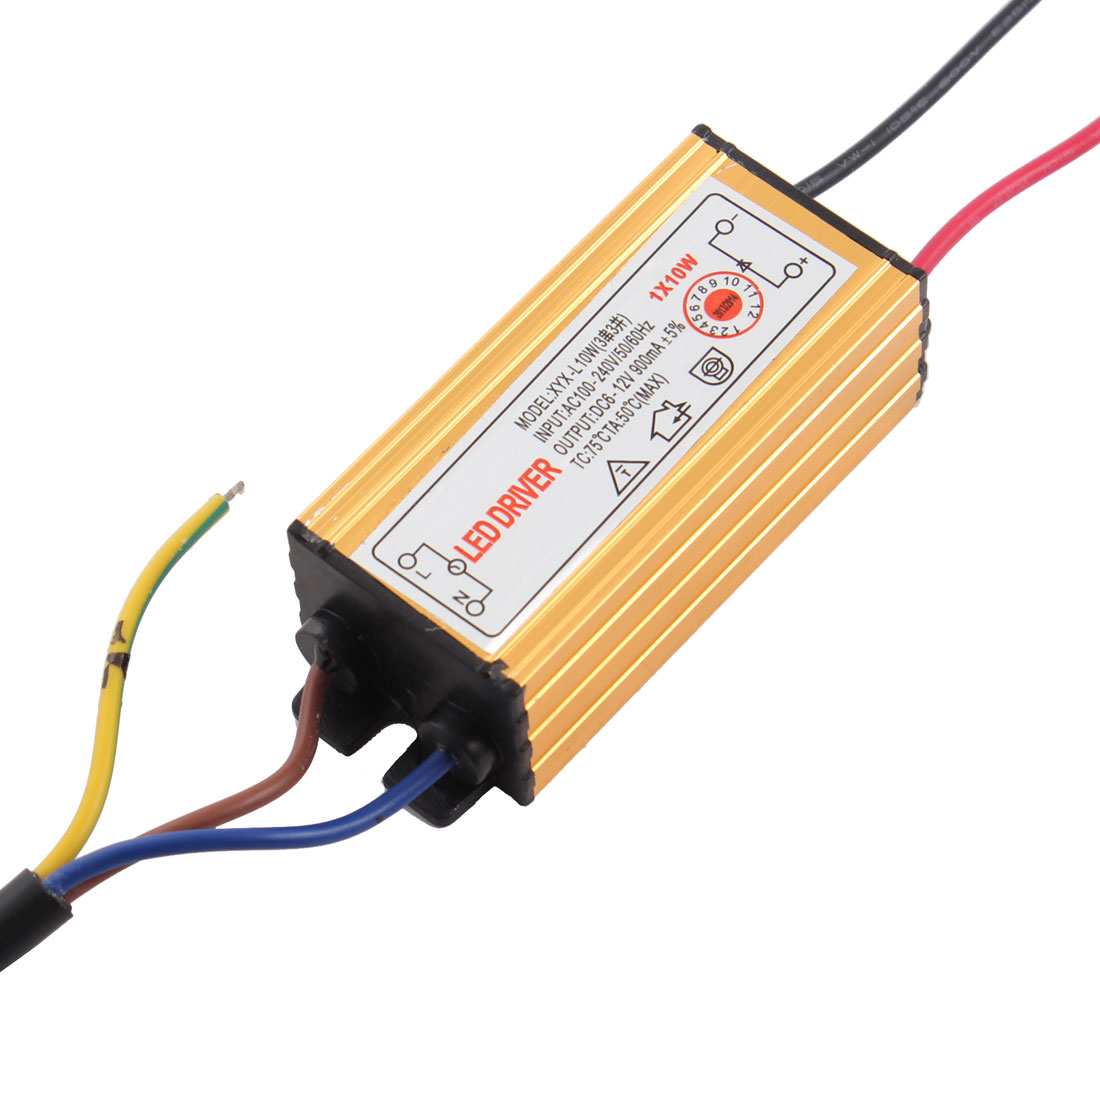 AC 100-240V 50/60Hz DC 6-12V 900mA 0.9A 10W LED Driver Power Supply Converter